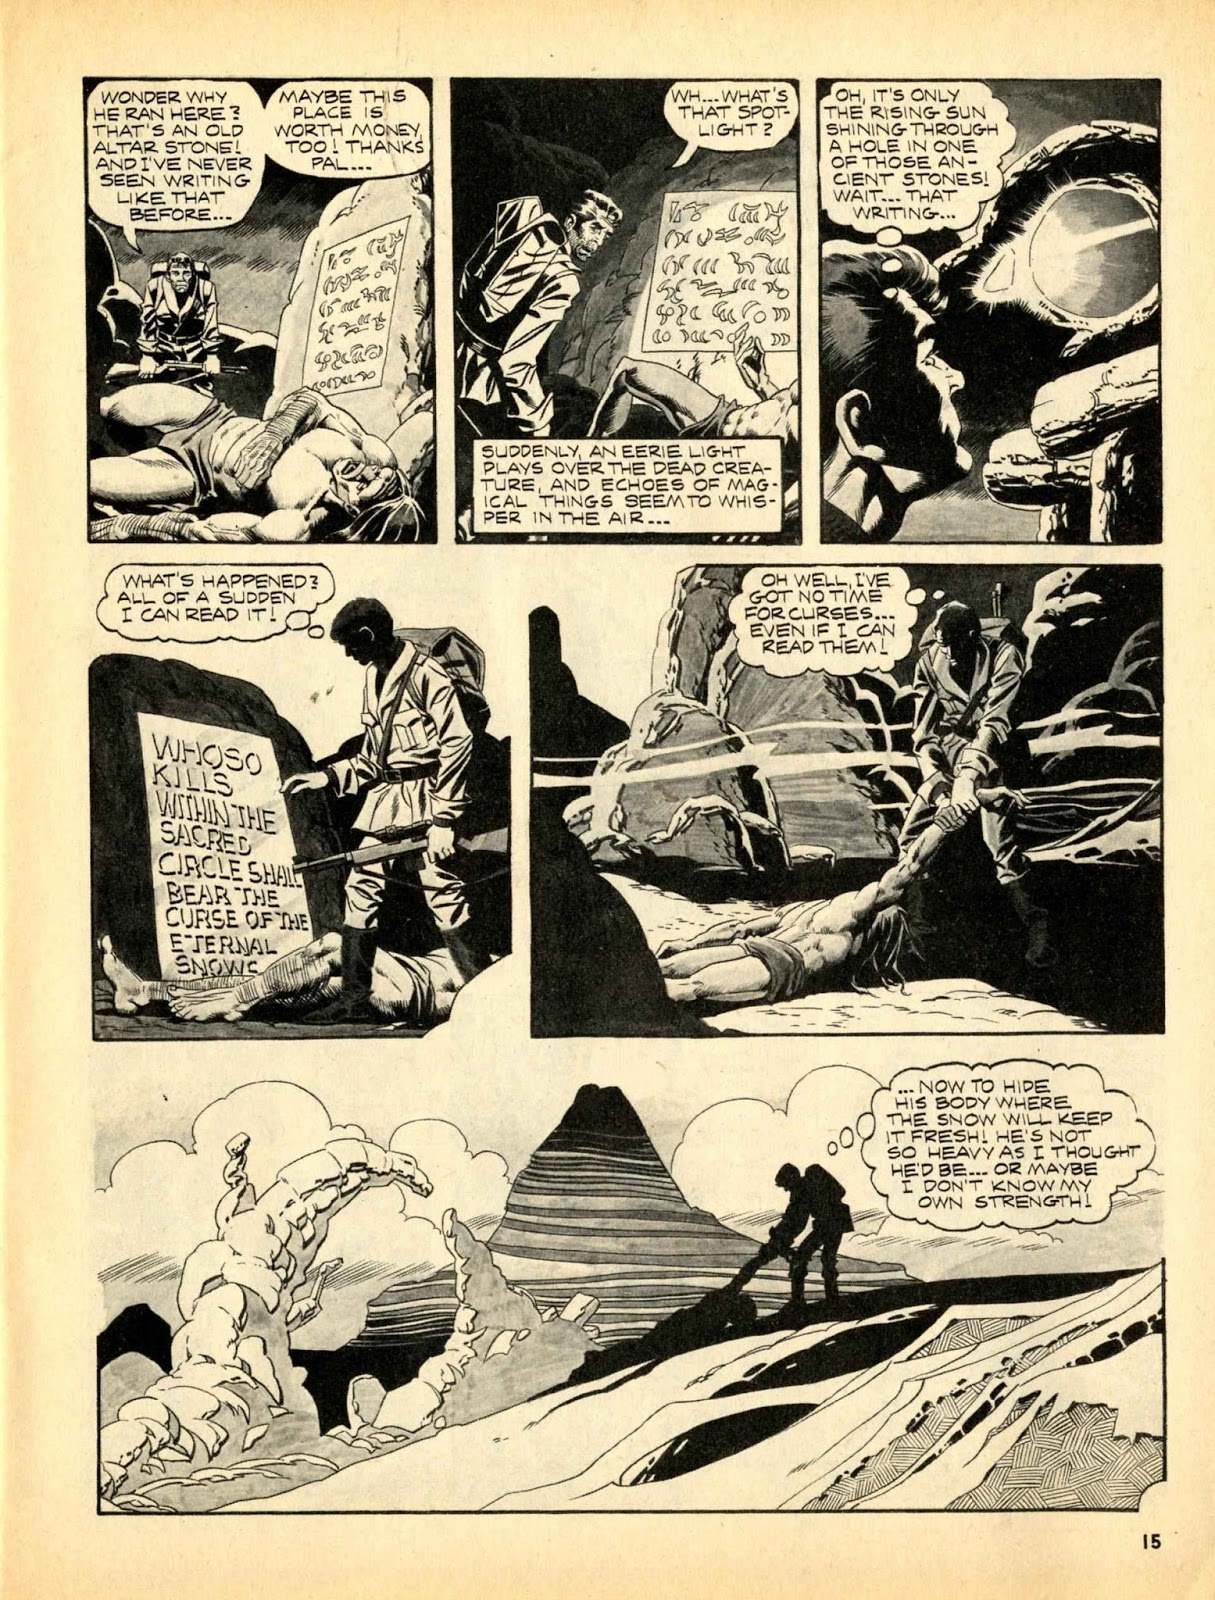 Web of Horror (1969) #3 pg15, written by Otto Binder with art from Ralph Reese.